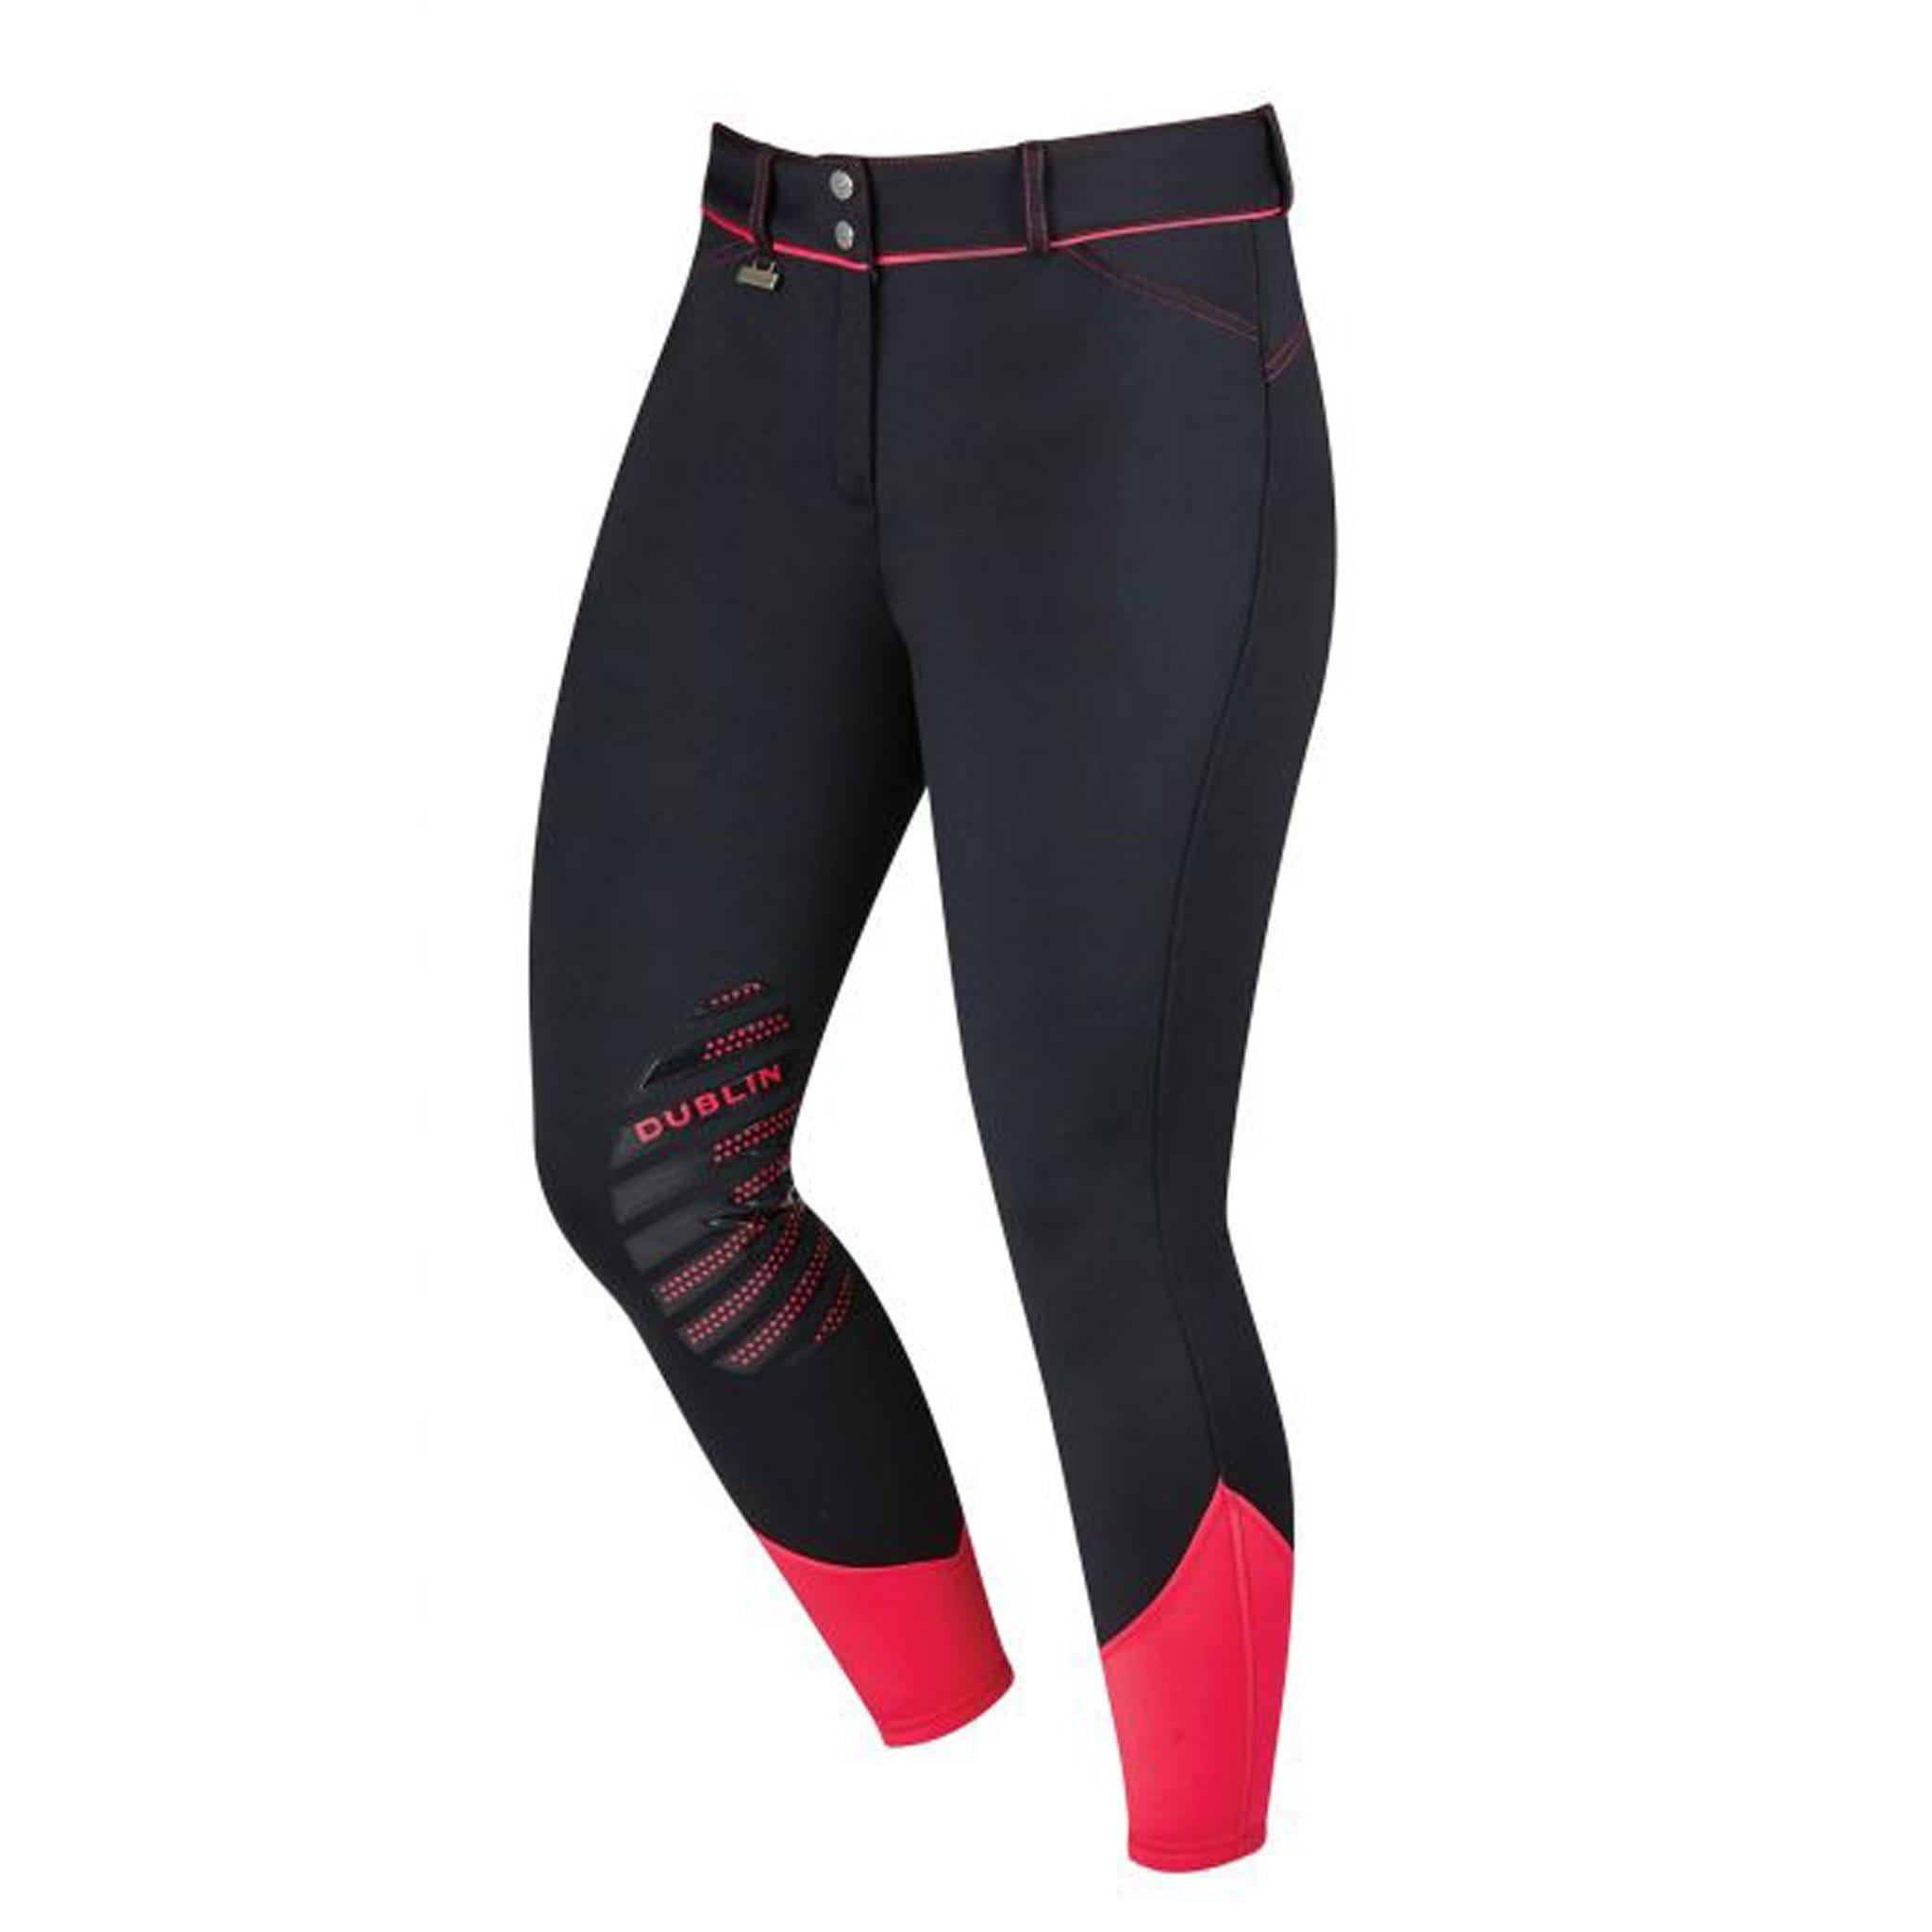 Dublin Thermal Gel Silicone Knee Patch Breeches Black/Pink Front